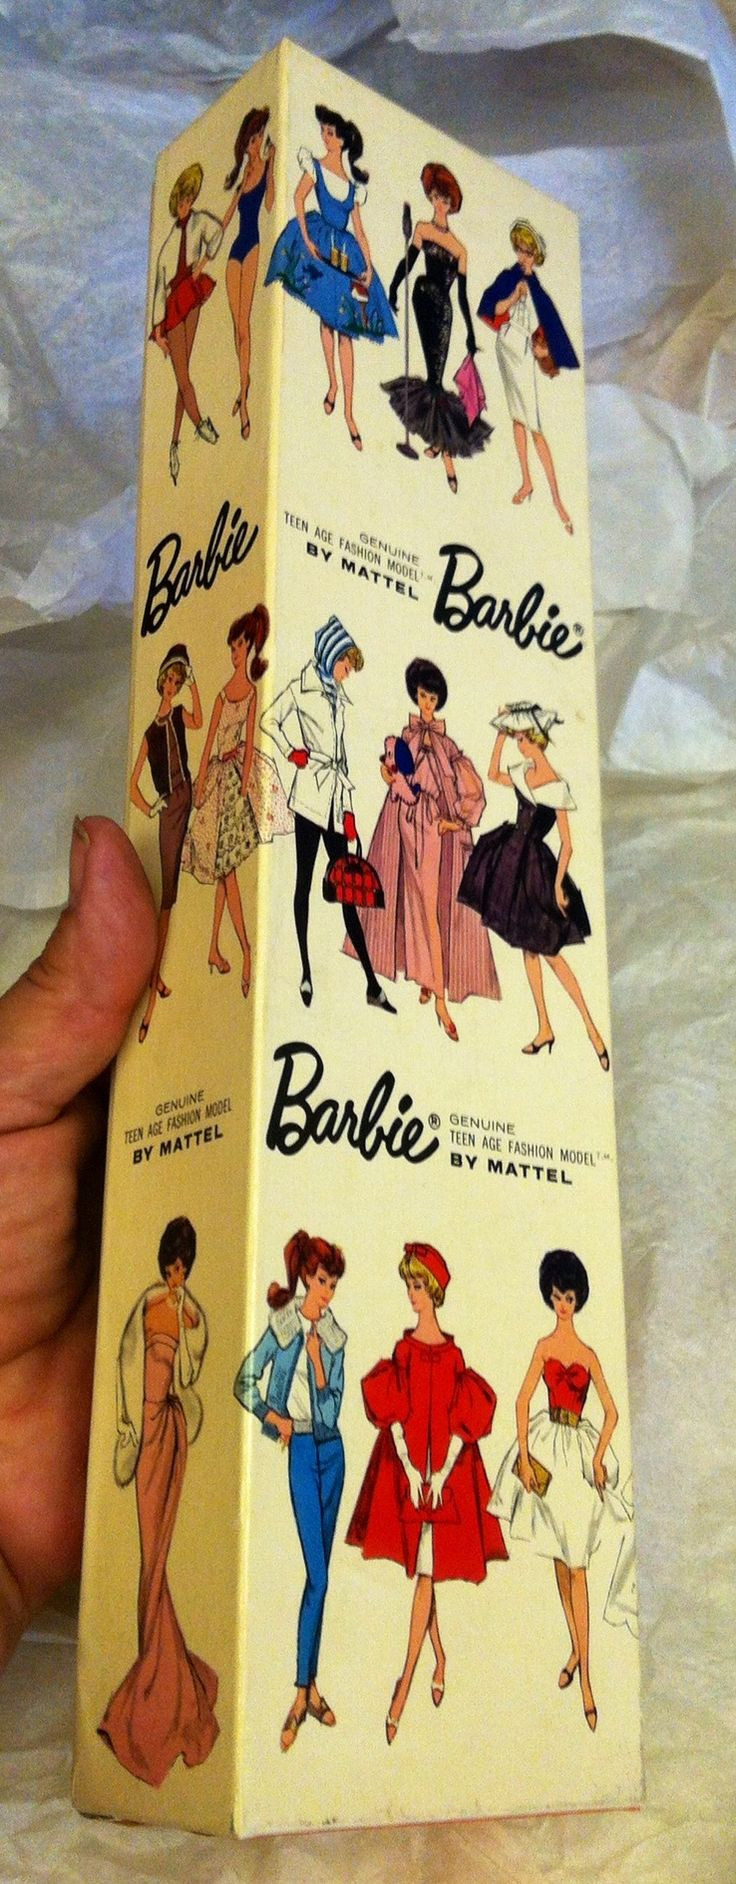 I had the barbie and box...I love this...such great packaging back in the day !!